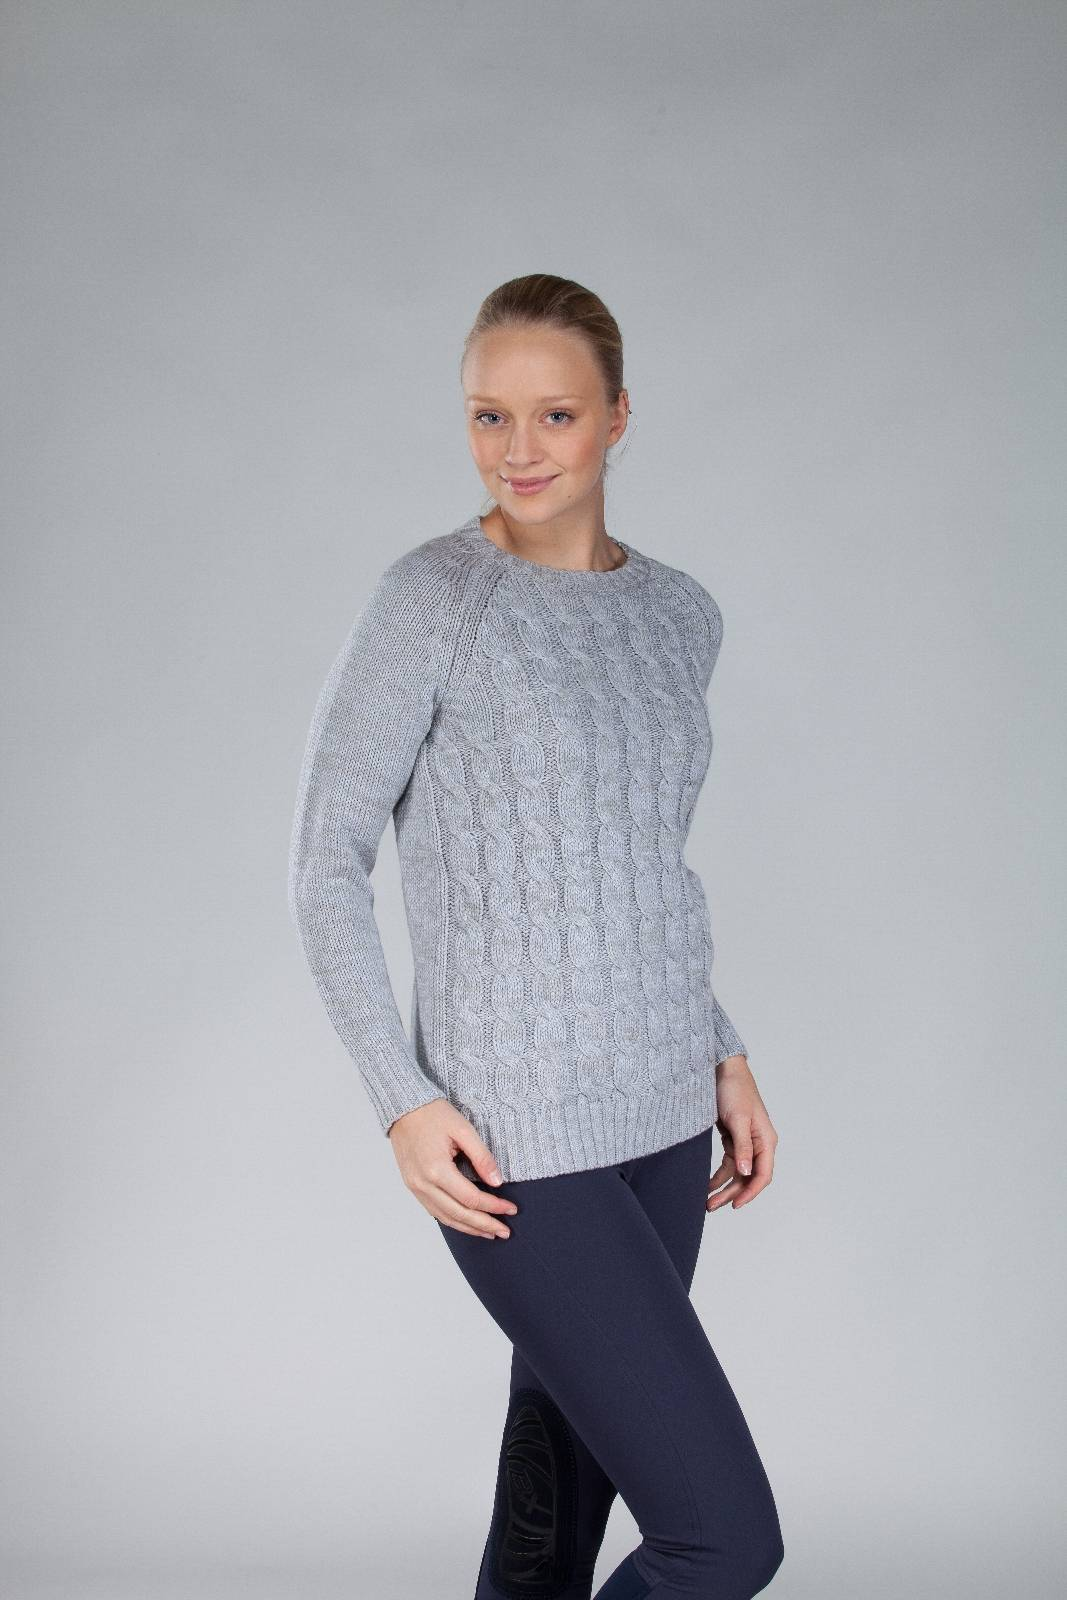 B Vertigo Dina Knitted Sweater - Ladies